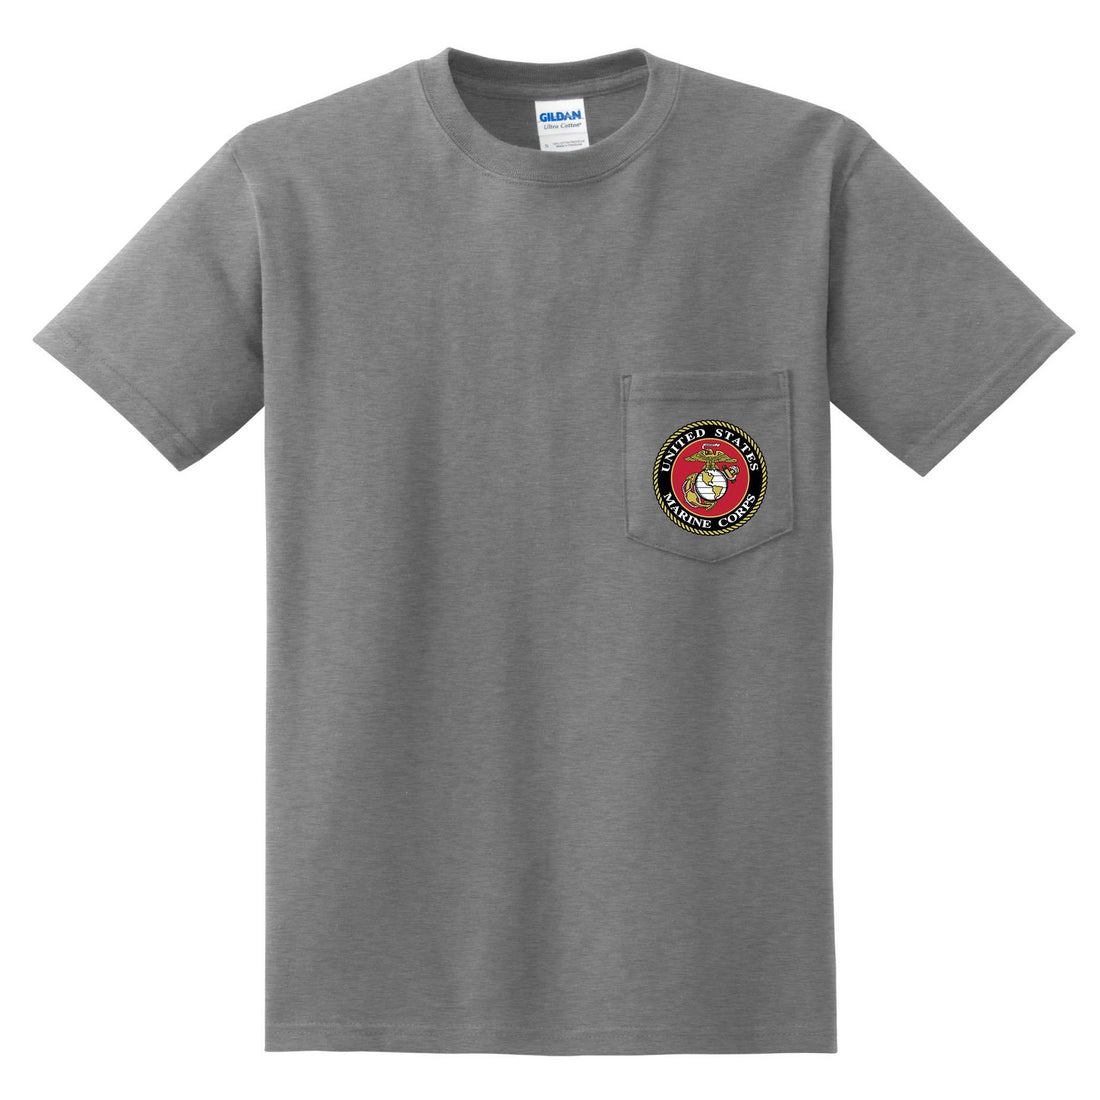 gray USMC shirt in short sleeve that has the eagle, globe, and anchor patched onto the front pocket.